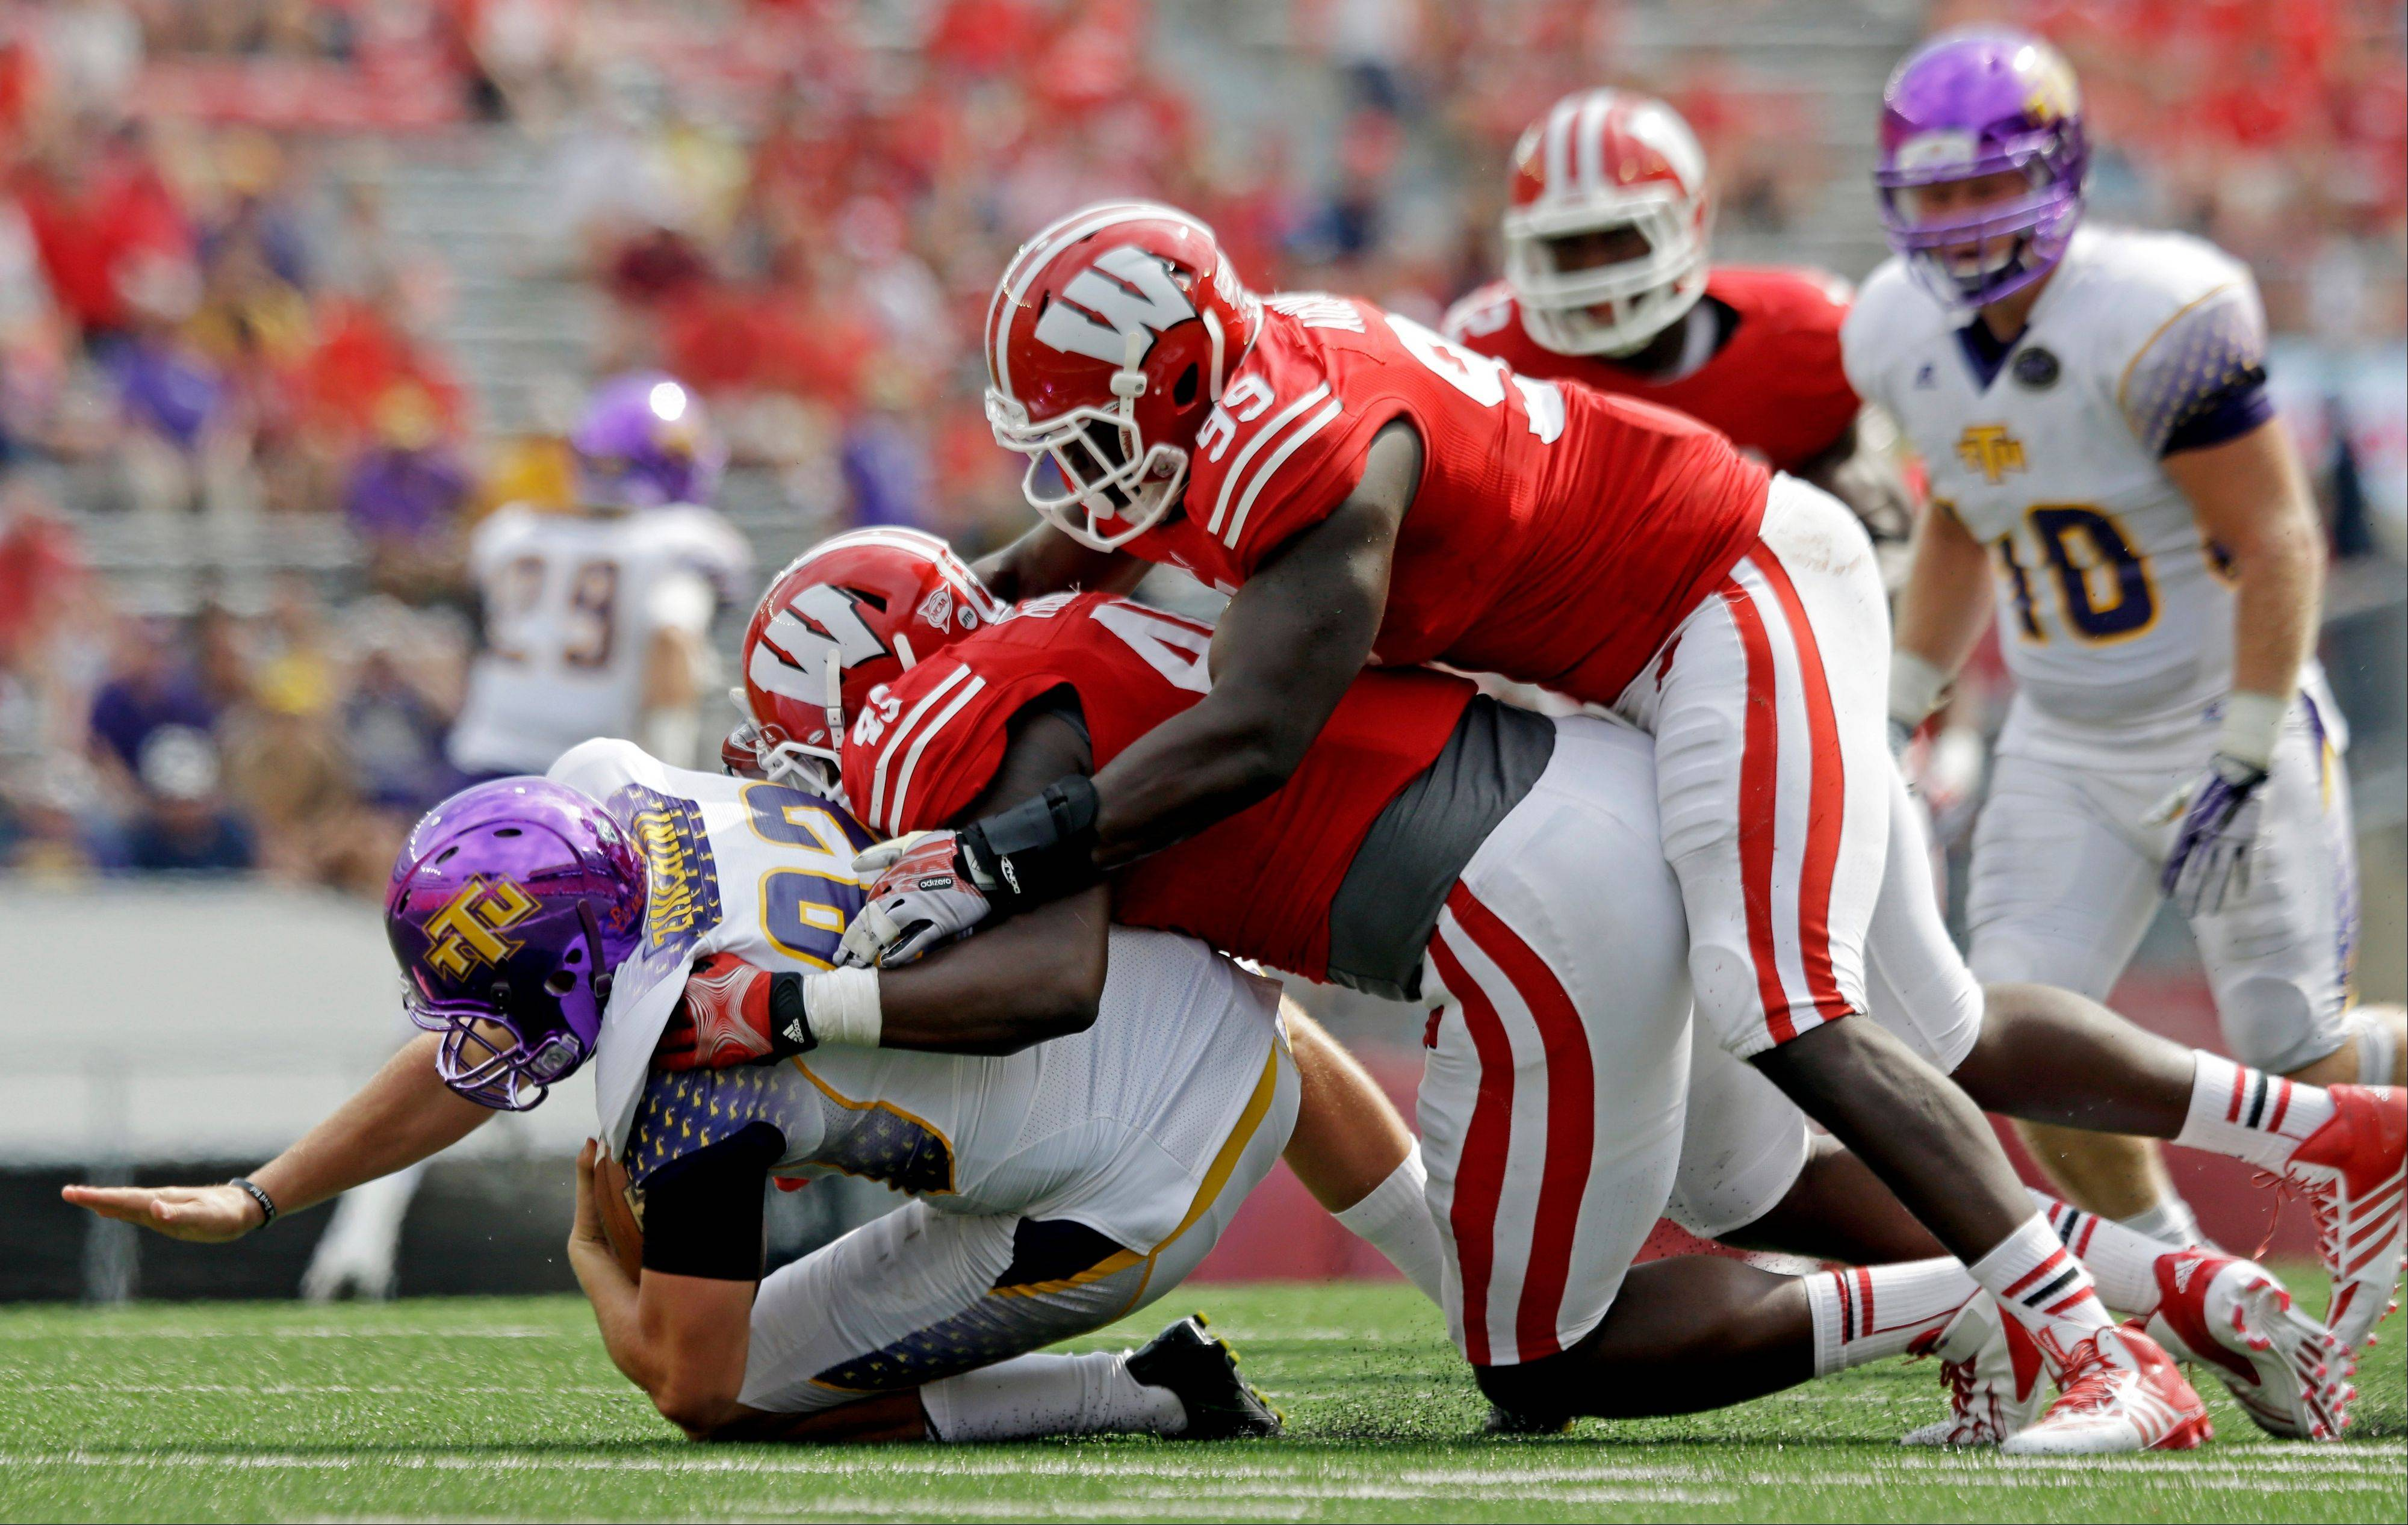 Wisconsin's Warren Herring (45) and James Adeyanju (99) tackle Tennessee Tech punter Chad Zinchini during the second half of Saturday's game in Madison.